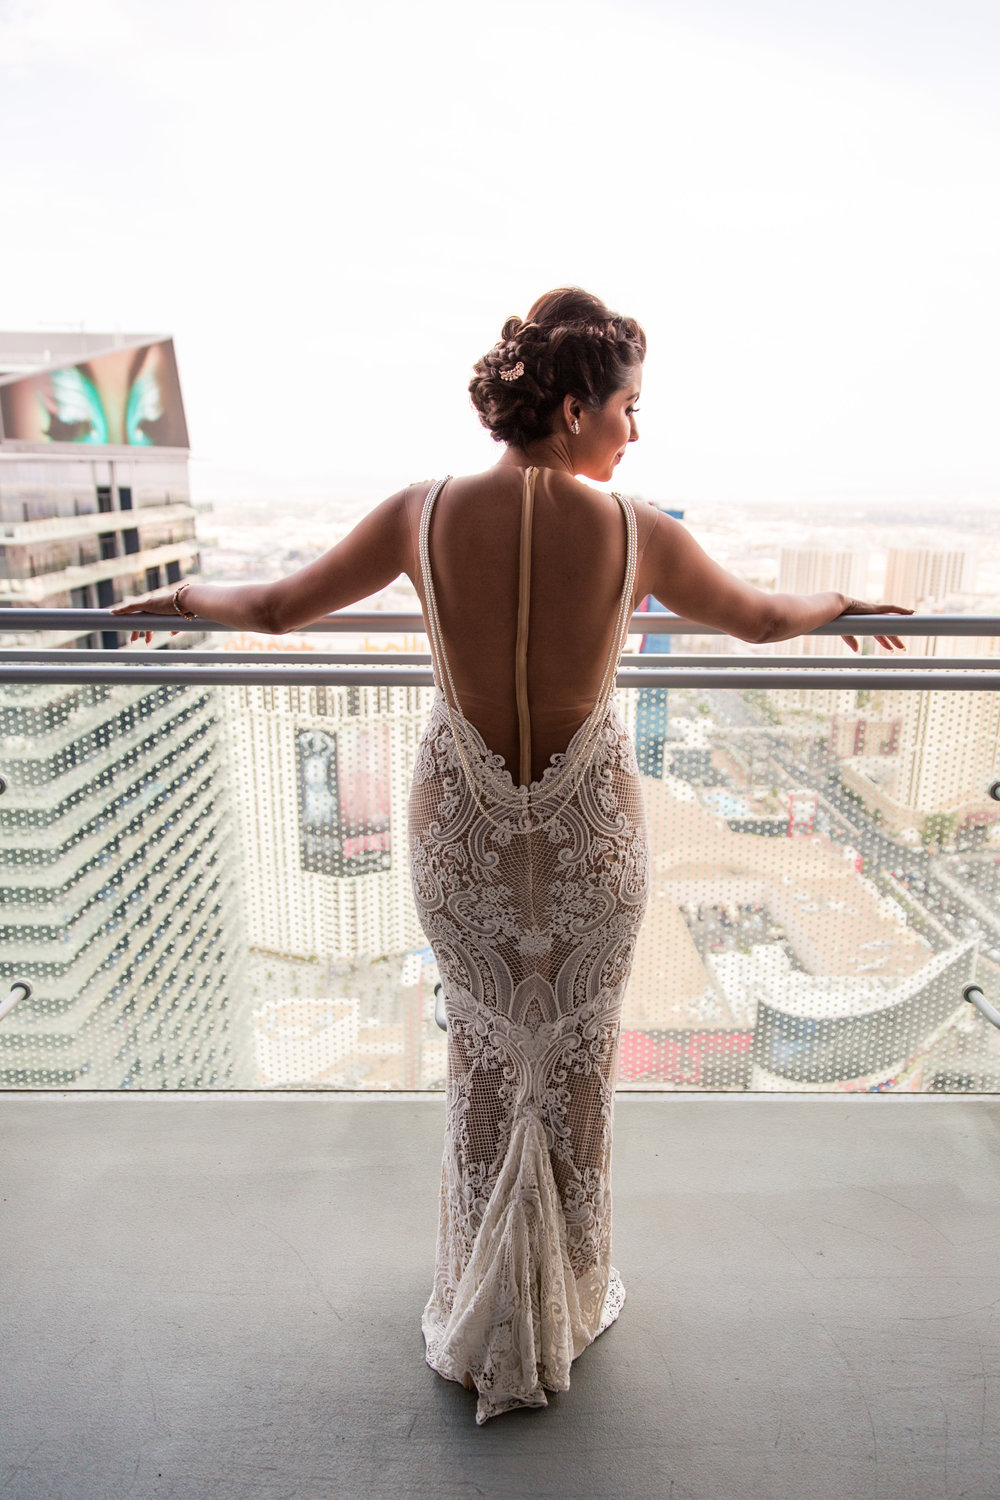 Bride on balcony, waiting.  Wedding Planning by  Andrea Eppolito Events   ·  Photography by  Shandro Photo    ·  Wedding Venue  Four Seasons Las Vegas   ·  Floral and Decor by  Destination by Design   ·  Chandeliers and Lighting by  LED Unplugged